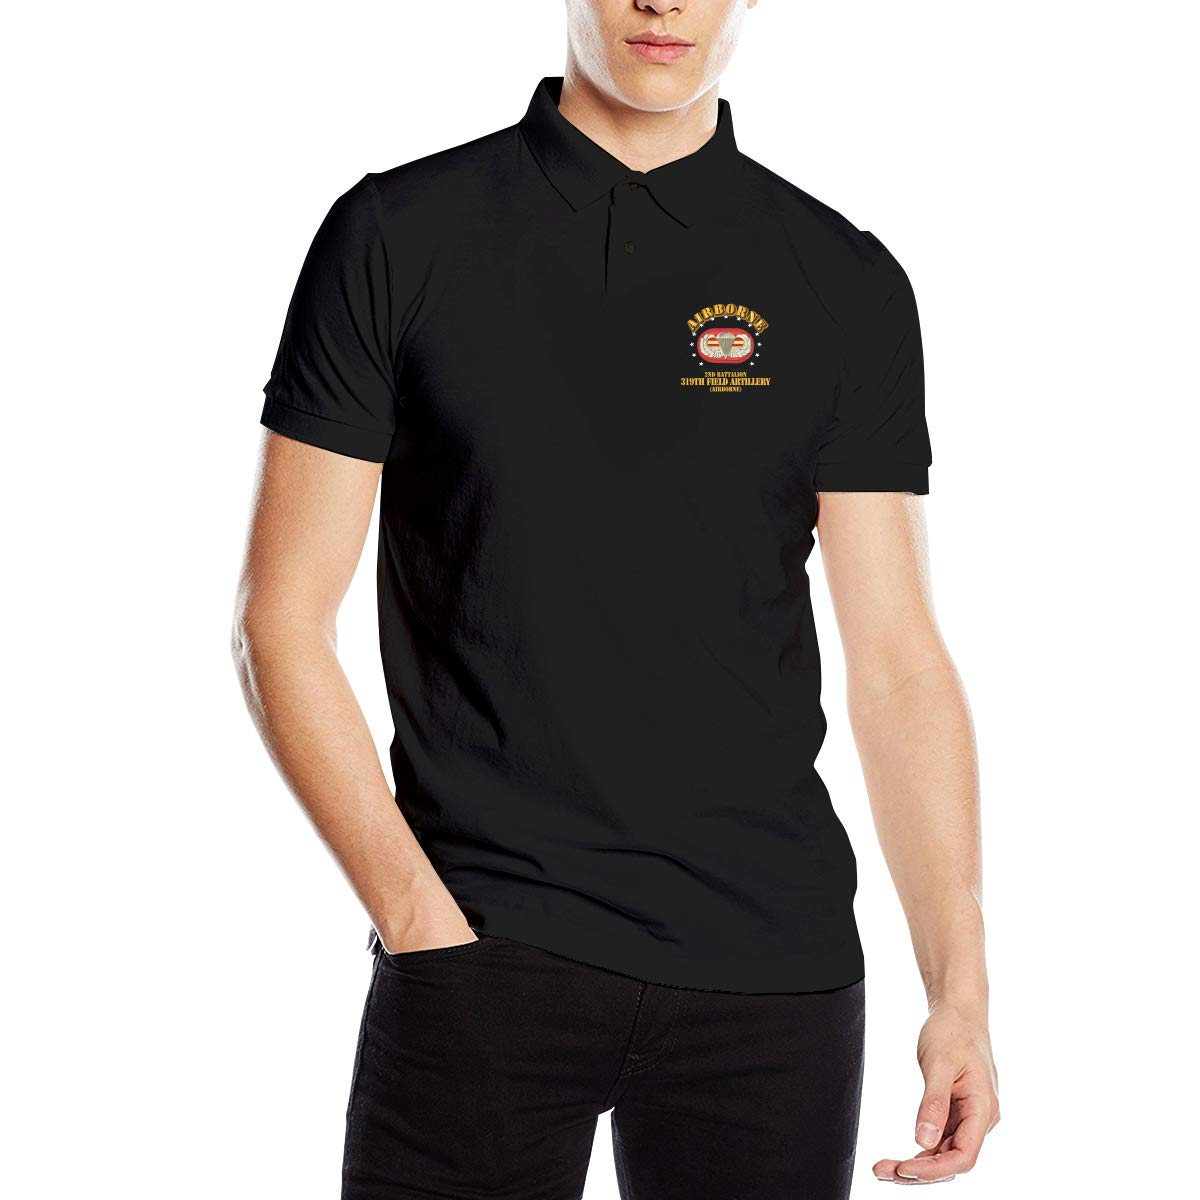 You Know And Good 2nd Bn 319th Field Artillery Rgt Airborne W Oval Mens Regular-Fit Cotton Polo Shirt Short Sleeve